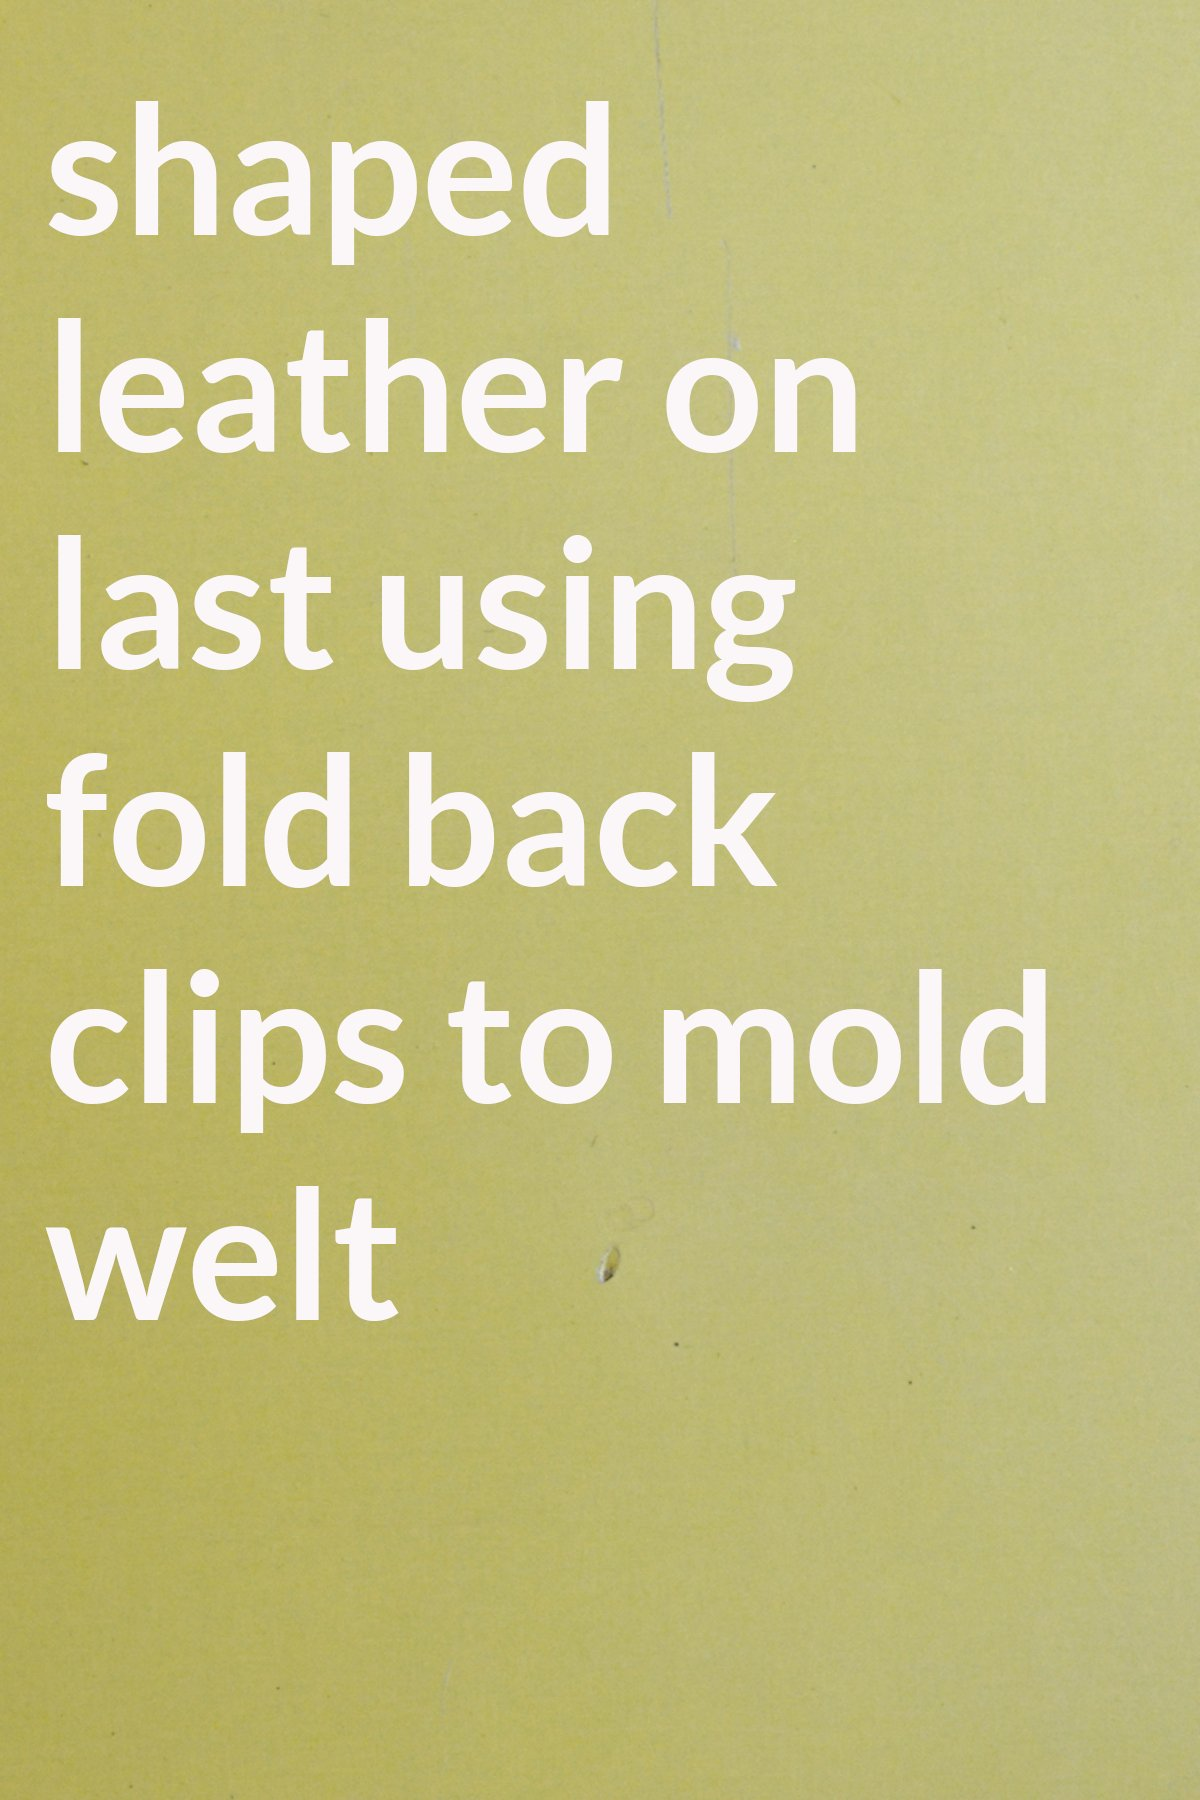 shaped leather on last using fold back clips to mold welt